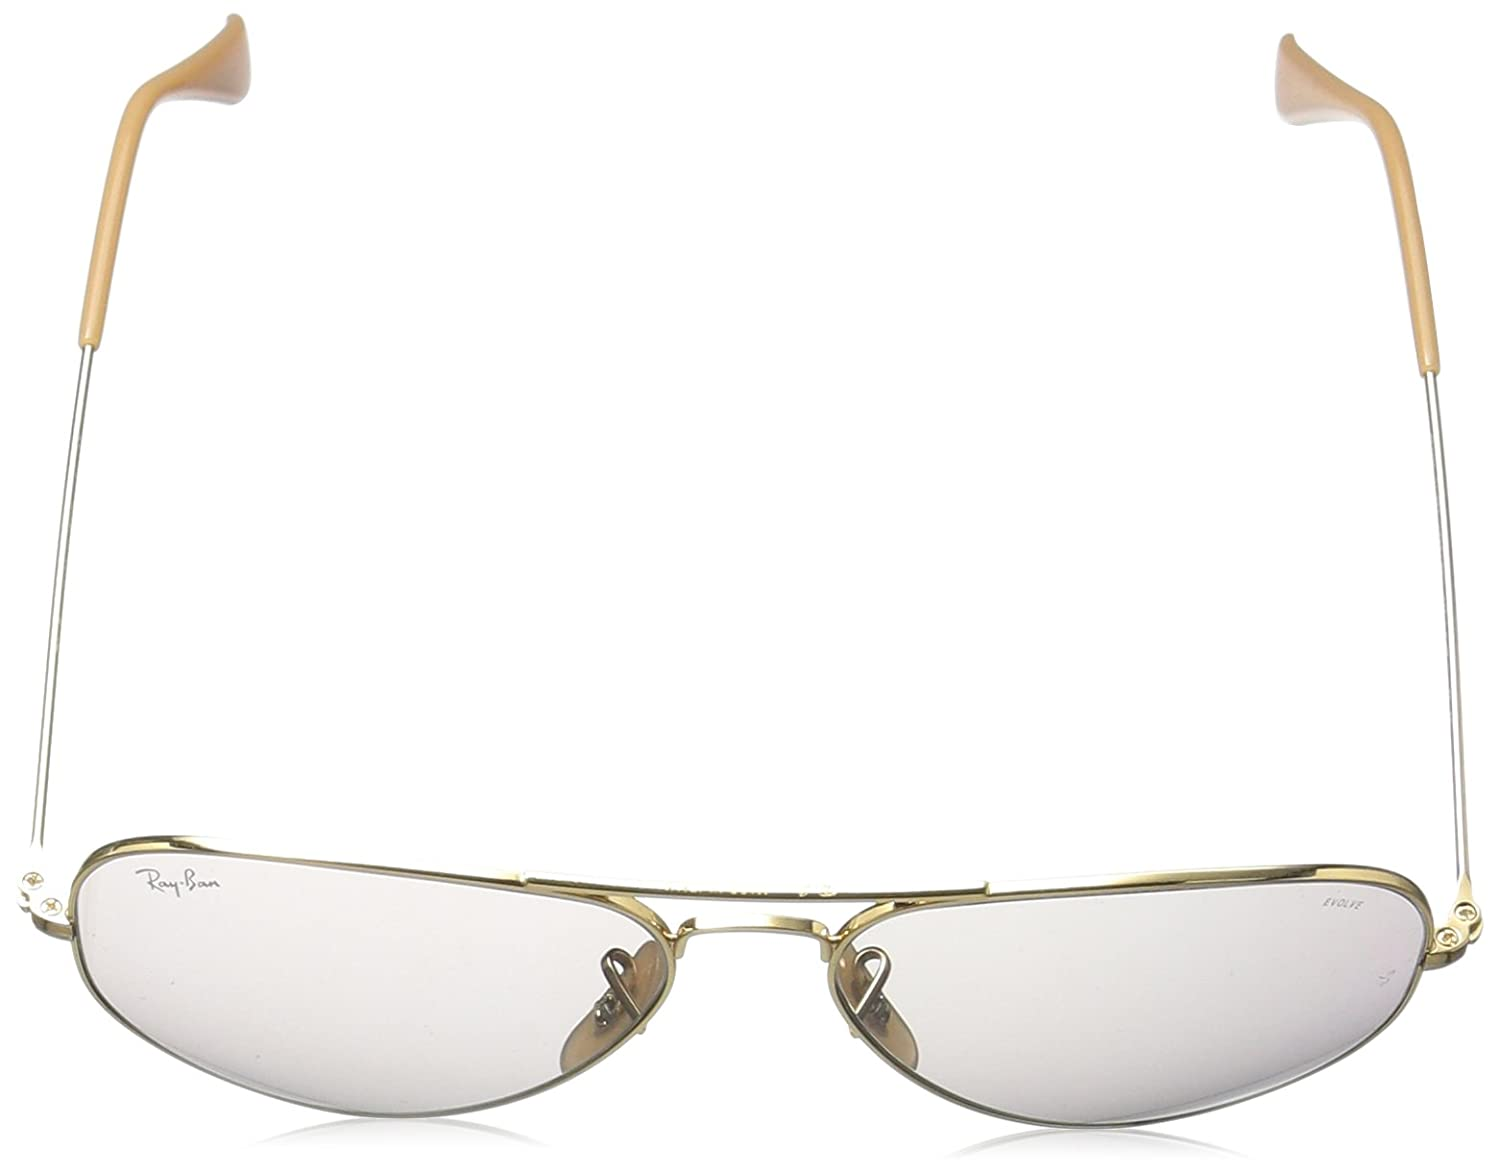 7595755aac Amazon.com  Ray-Ban Aviator Evolve RB3025-9064V8 Sunglasses Gold w Grey  Photochromic Lens 58mm  Clothing